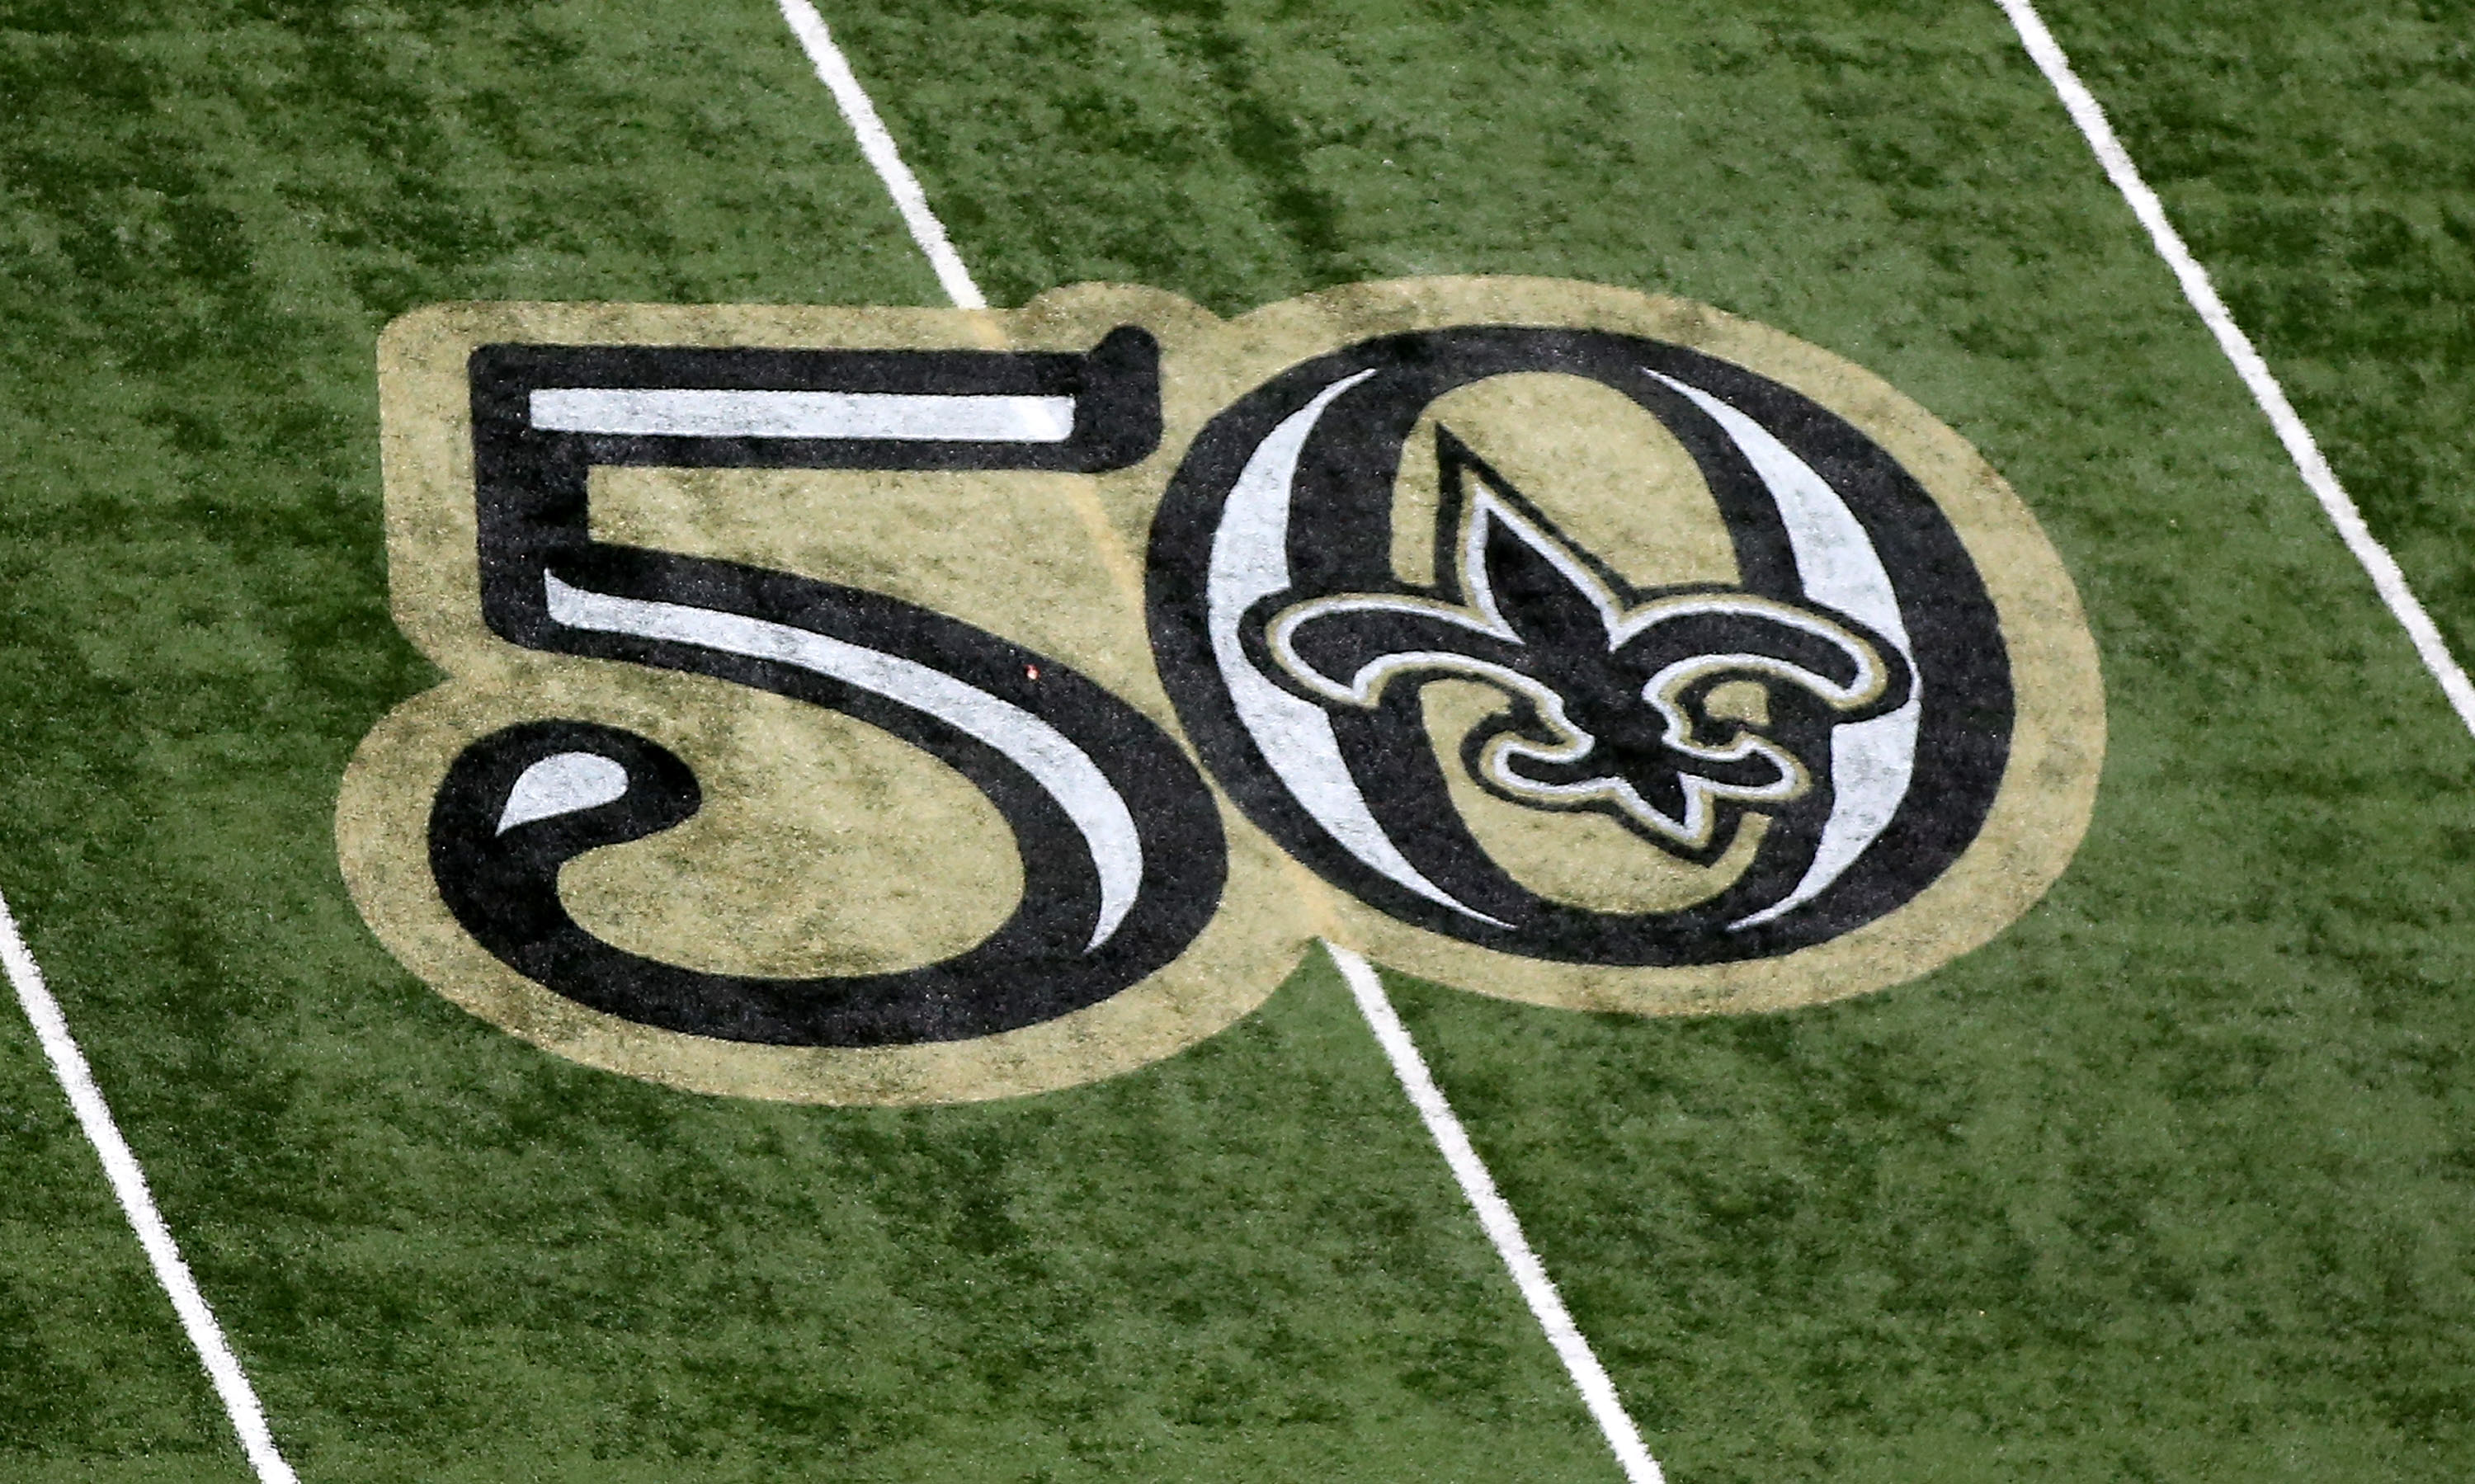 New orleans saints divisional outlook nfc south mock draft page 5 new orleans la october 16 a logo celebrating the new orleans saints organization for fifty years is painted on the field at the mercedes benz superdome biocorpaavc Gallery